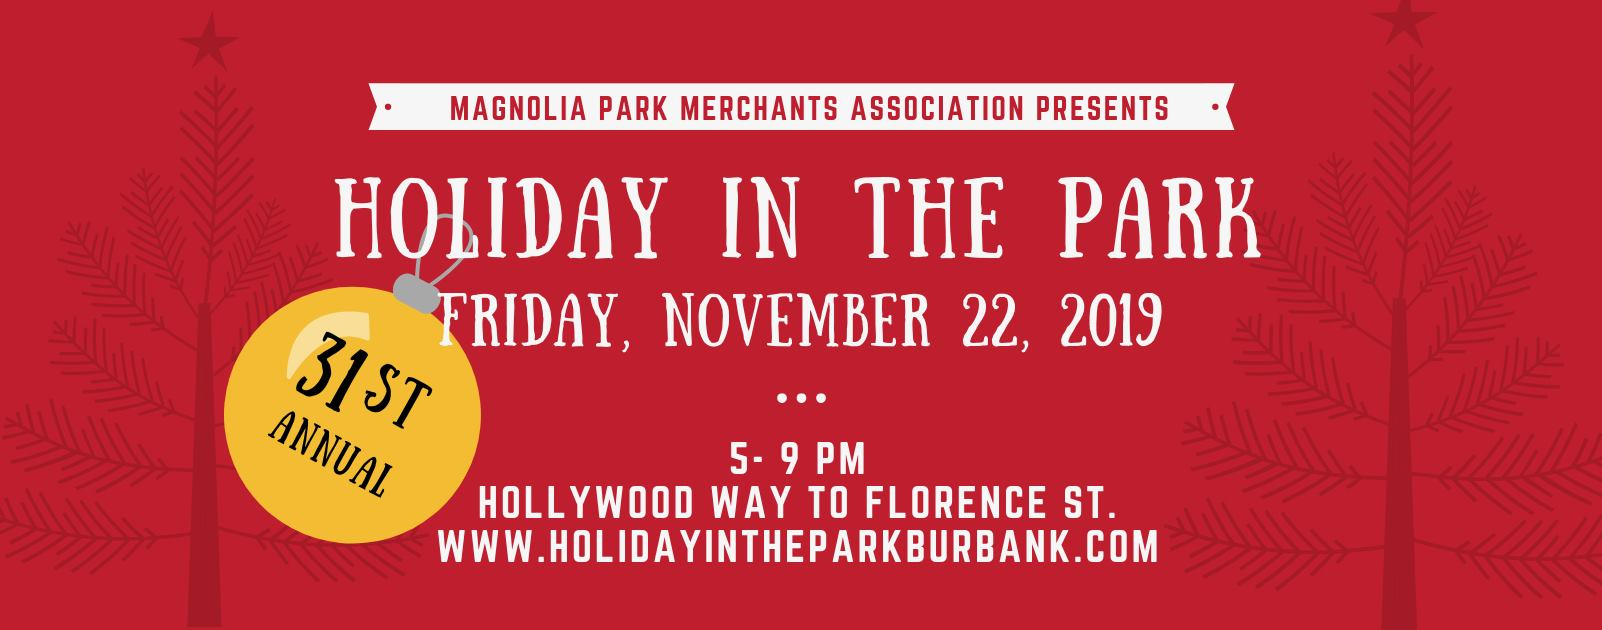 Holiday in the Park